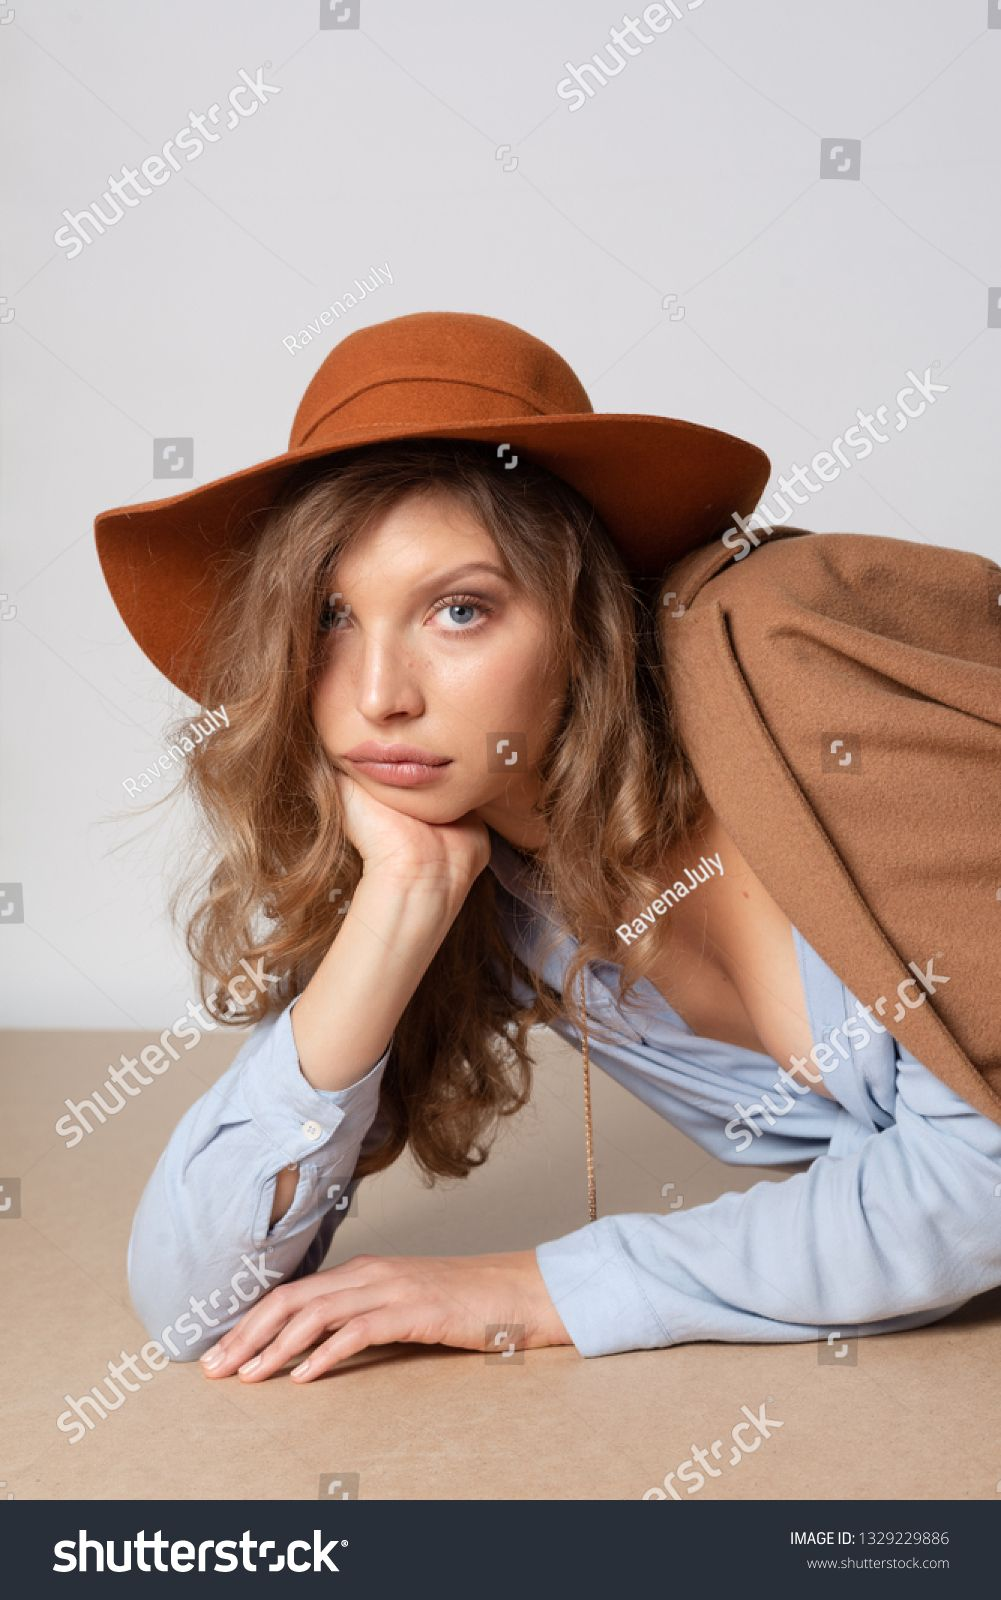 Fashion portrait of beautiful smiling girl with curly hair and big lips in a hat posing in studio on white background. Model test portrait. Natural young beauty #Sponsored , #ad, #hair#curly#lips#big